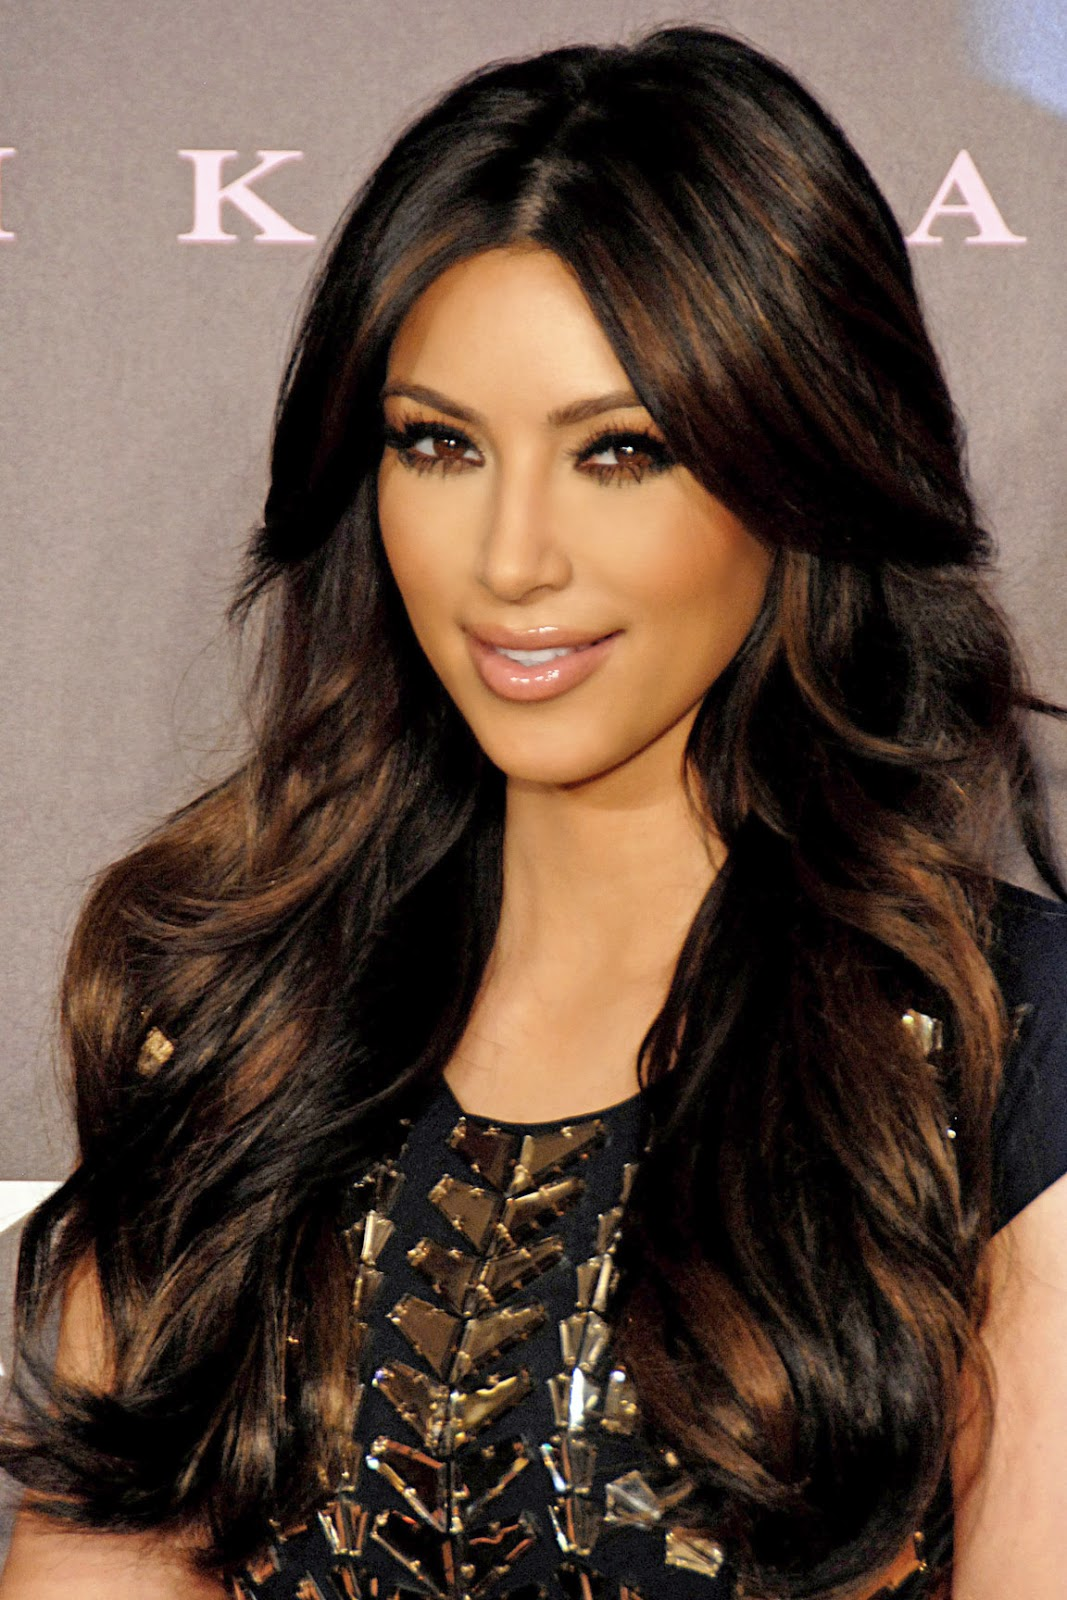 Kim Kardashian Biography| Profile| Pictures| News